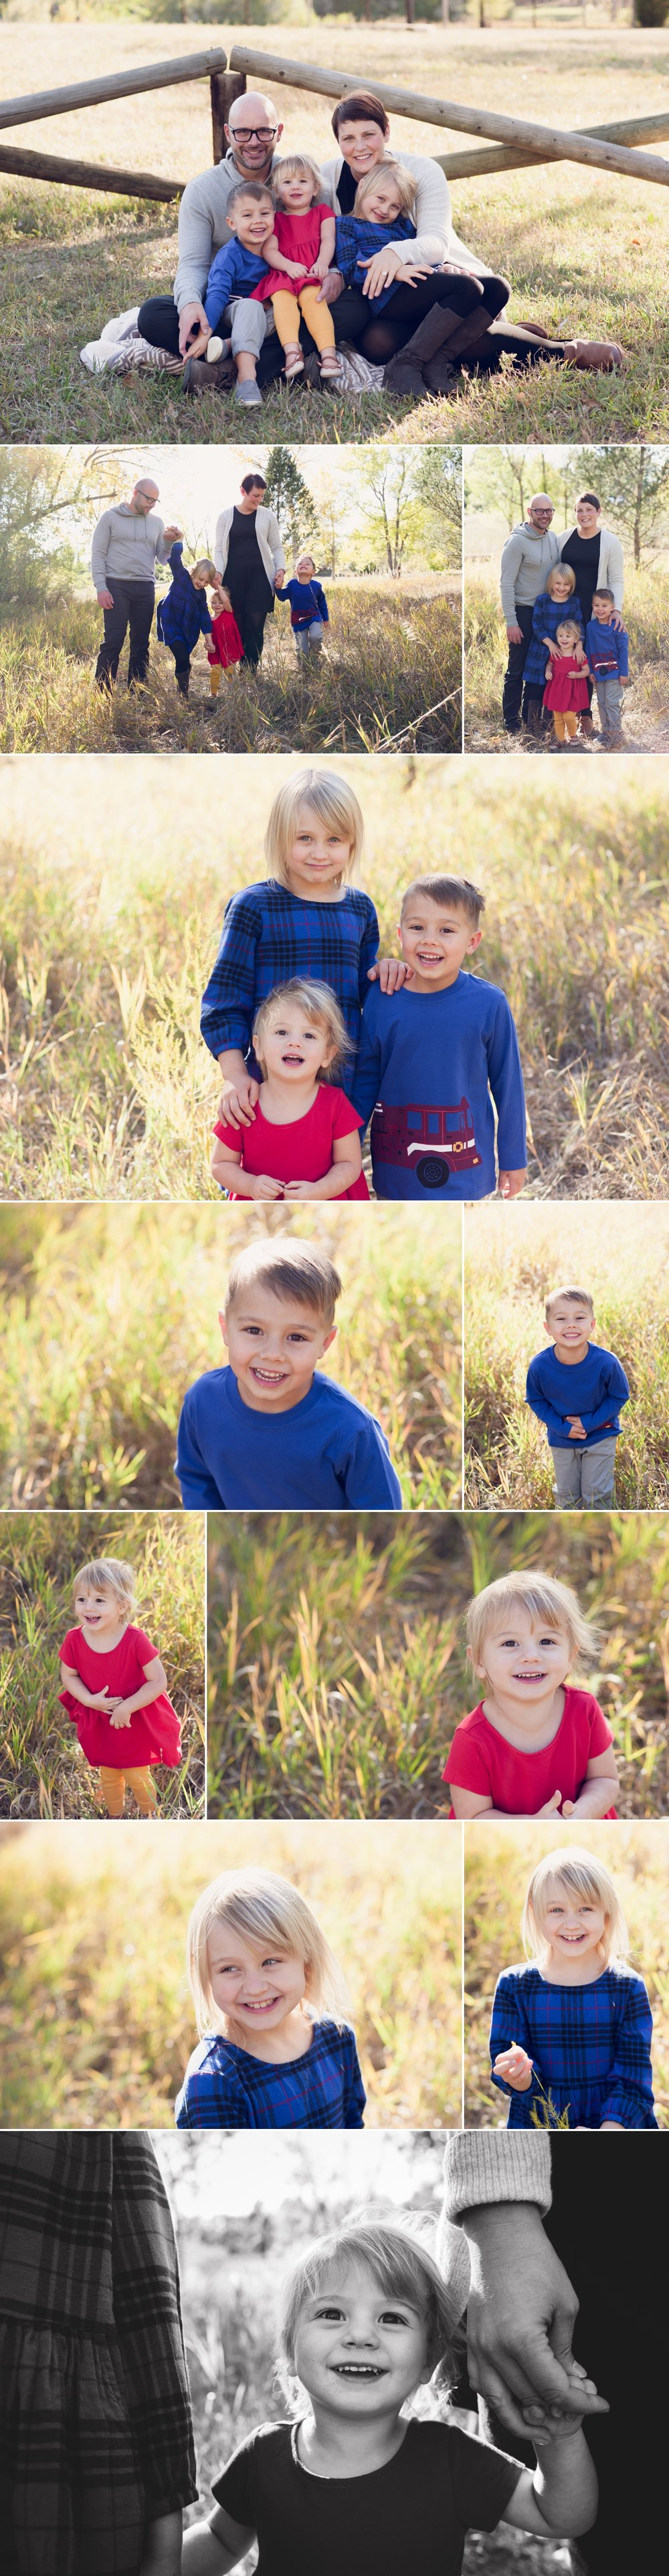 S kids Denver Family Photographer 1.jpg